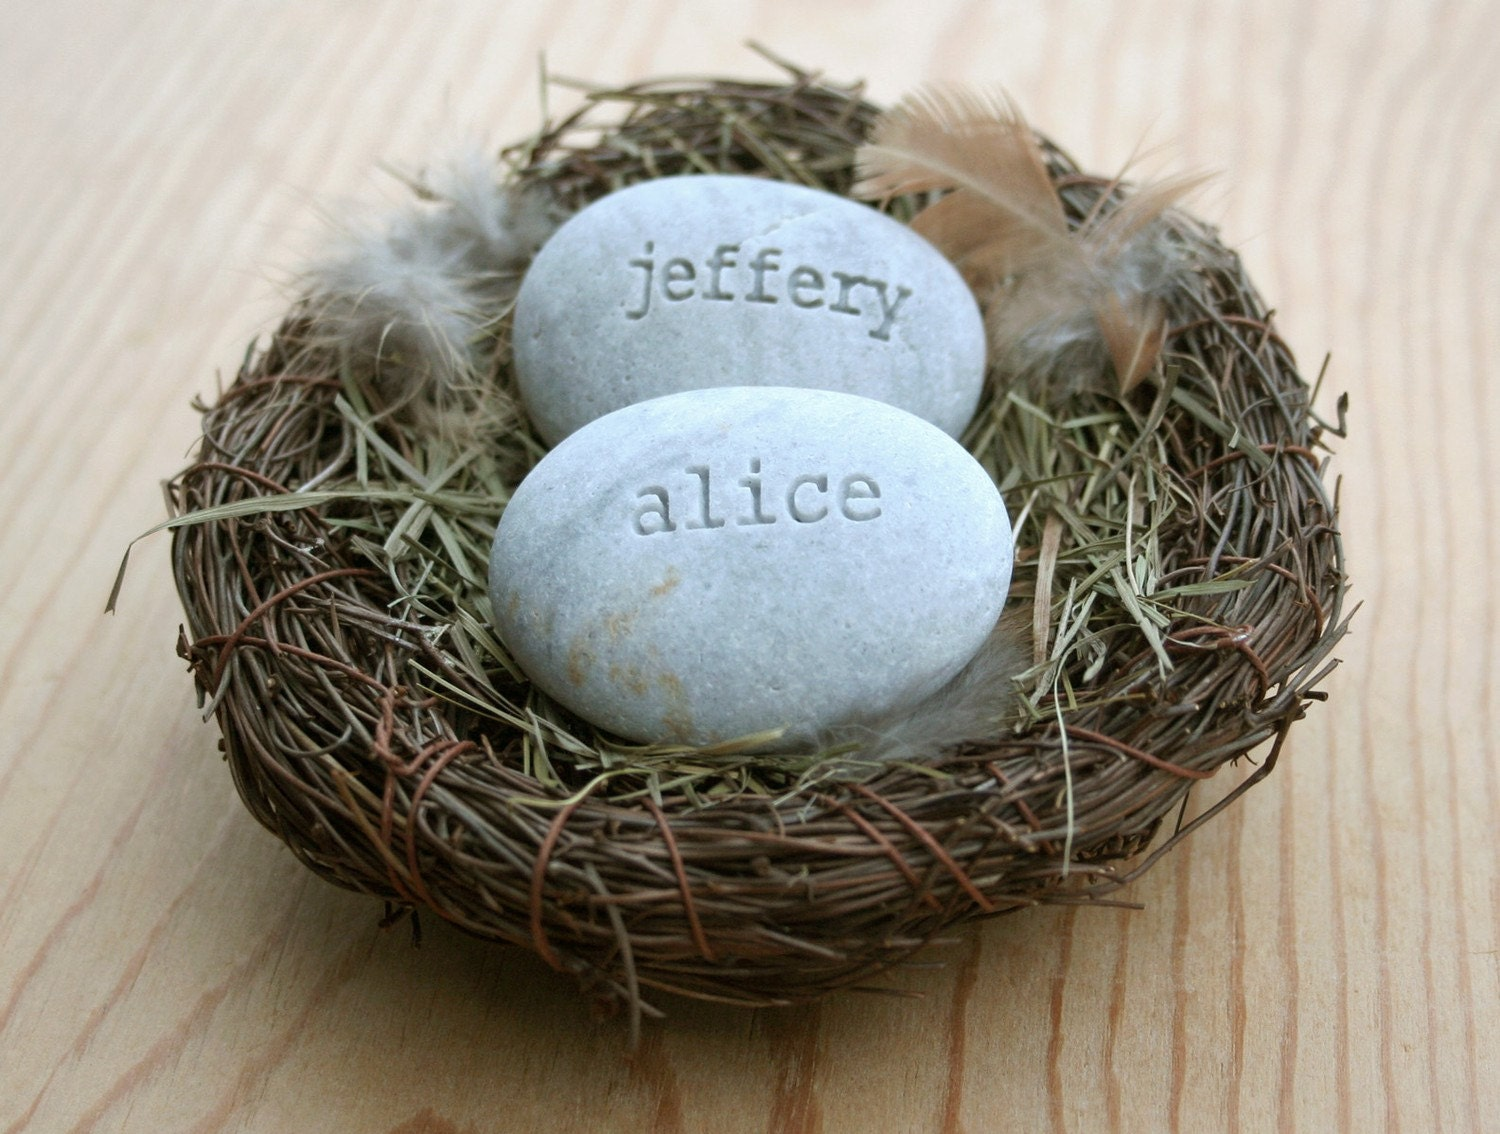 Our nest - custom engraved name stones in nest